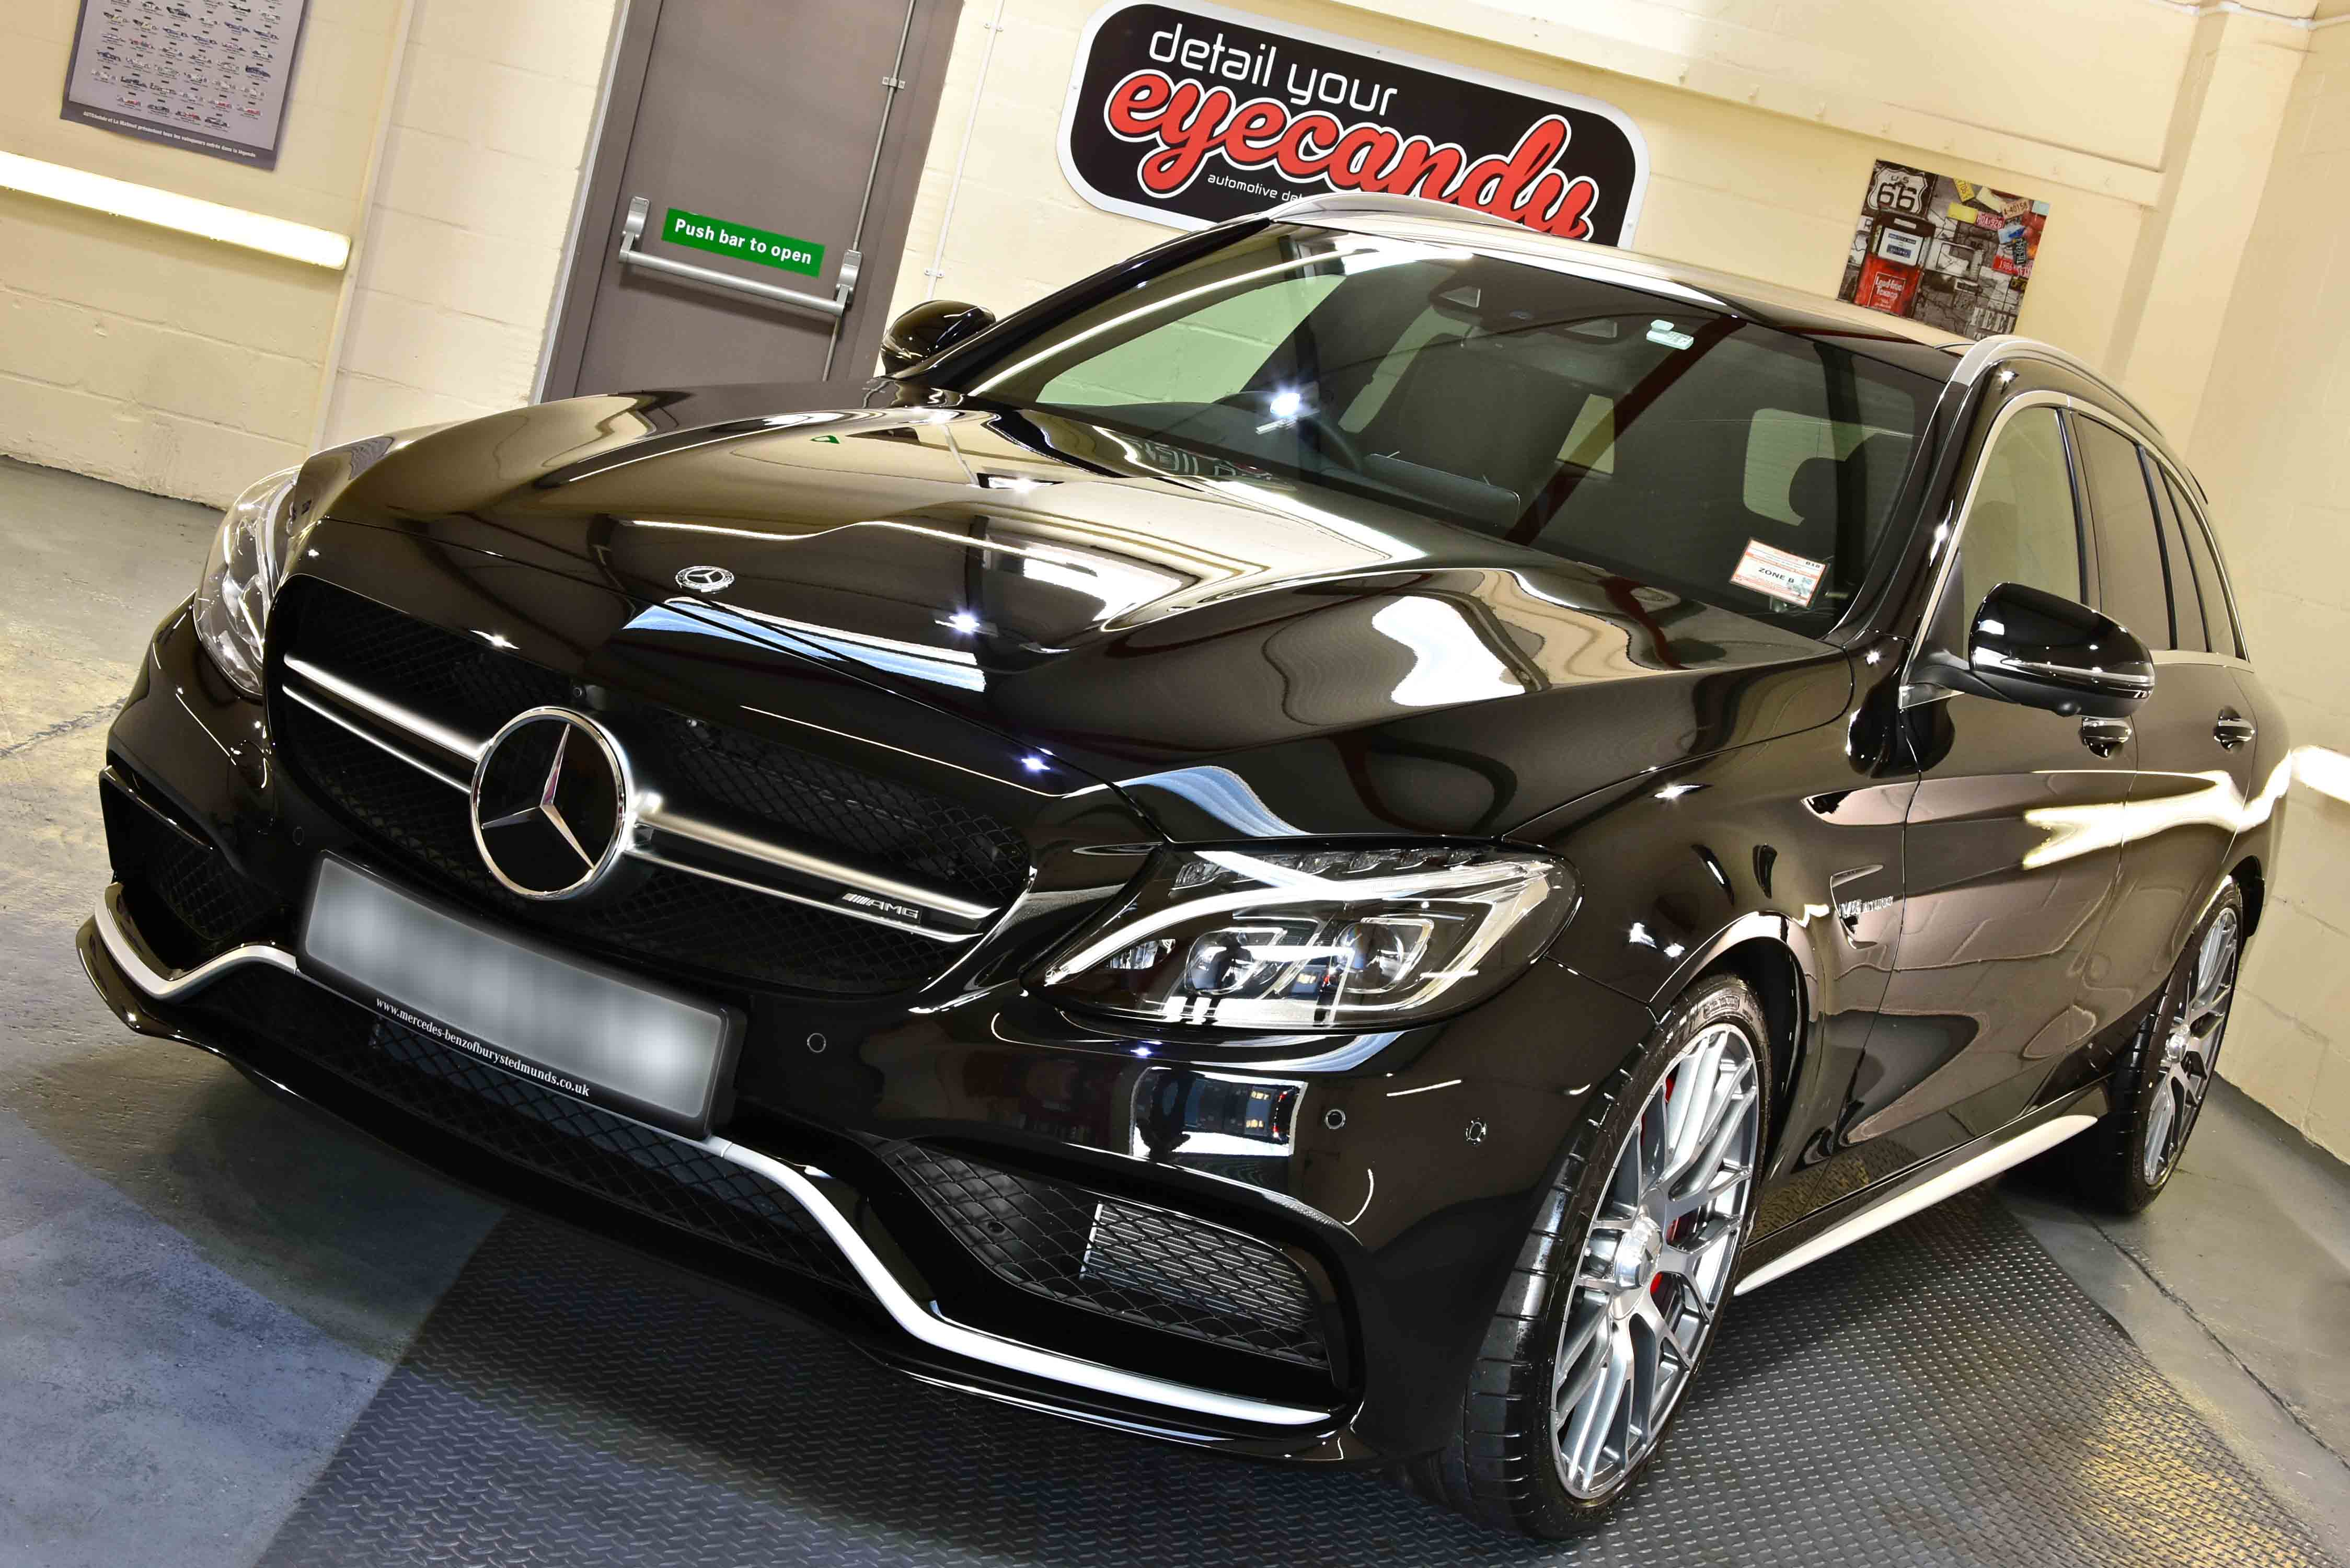 Mercedes-AMG E63 S Estate New Car Enhancement and Protection Detail with Gyeon DuraFlex